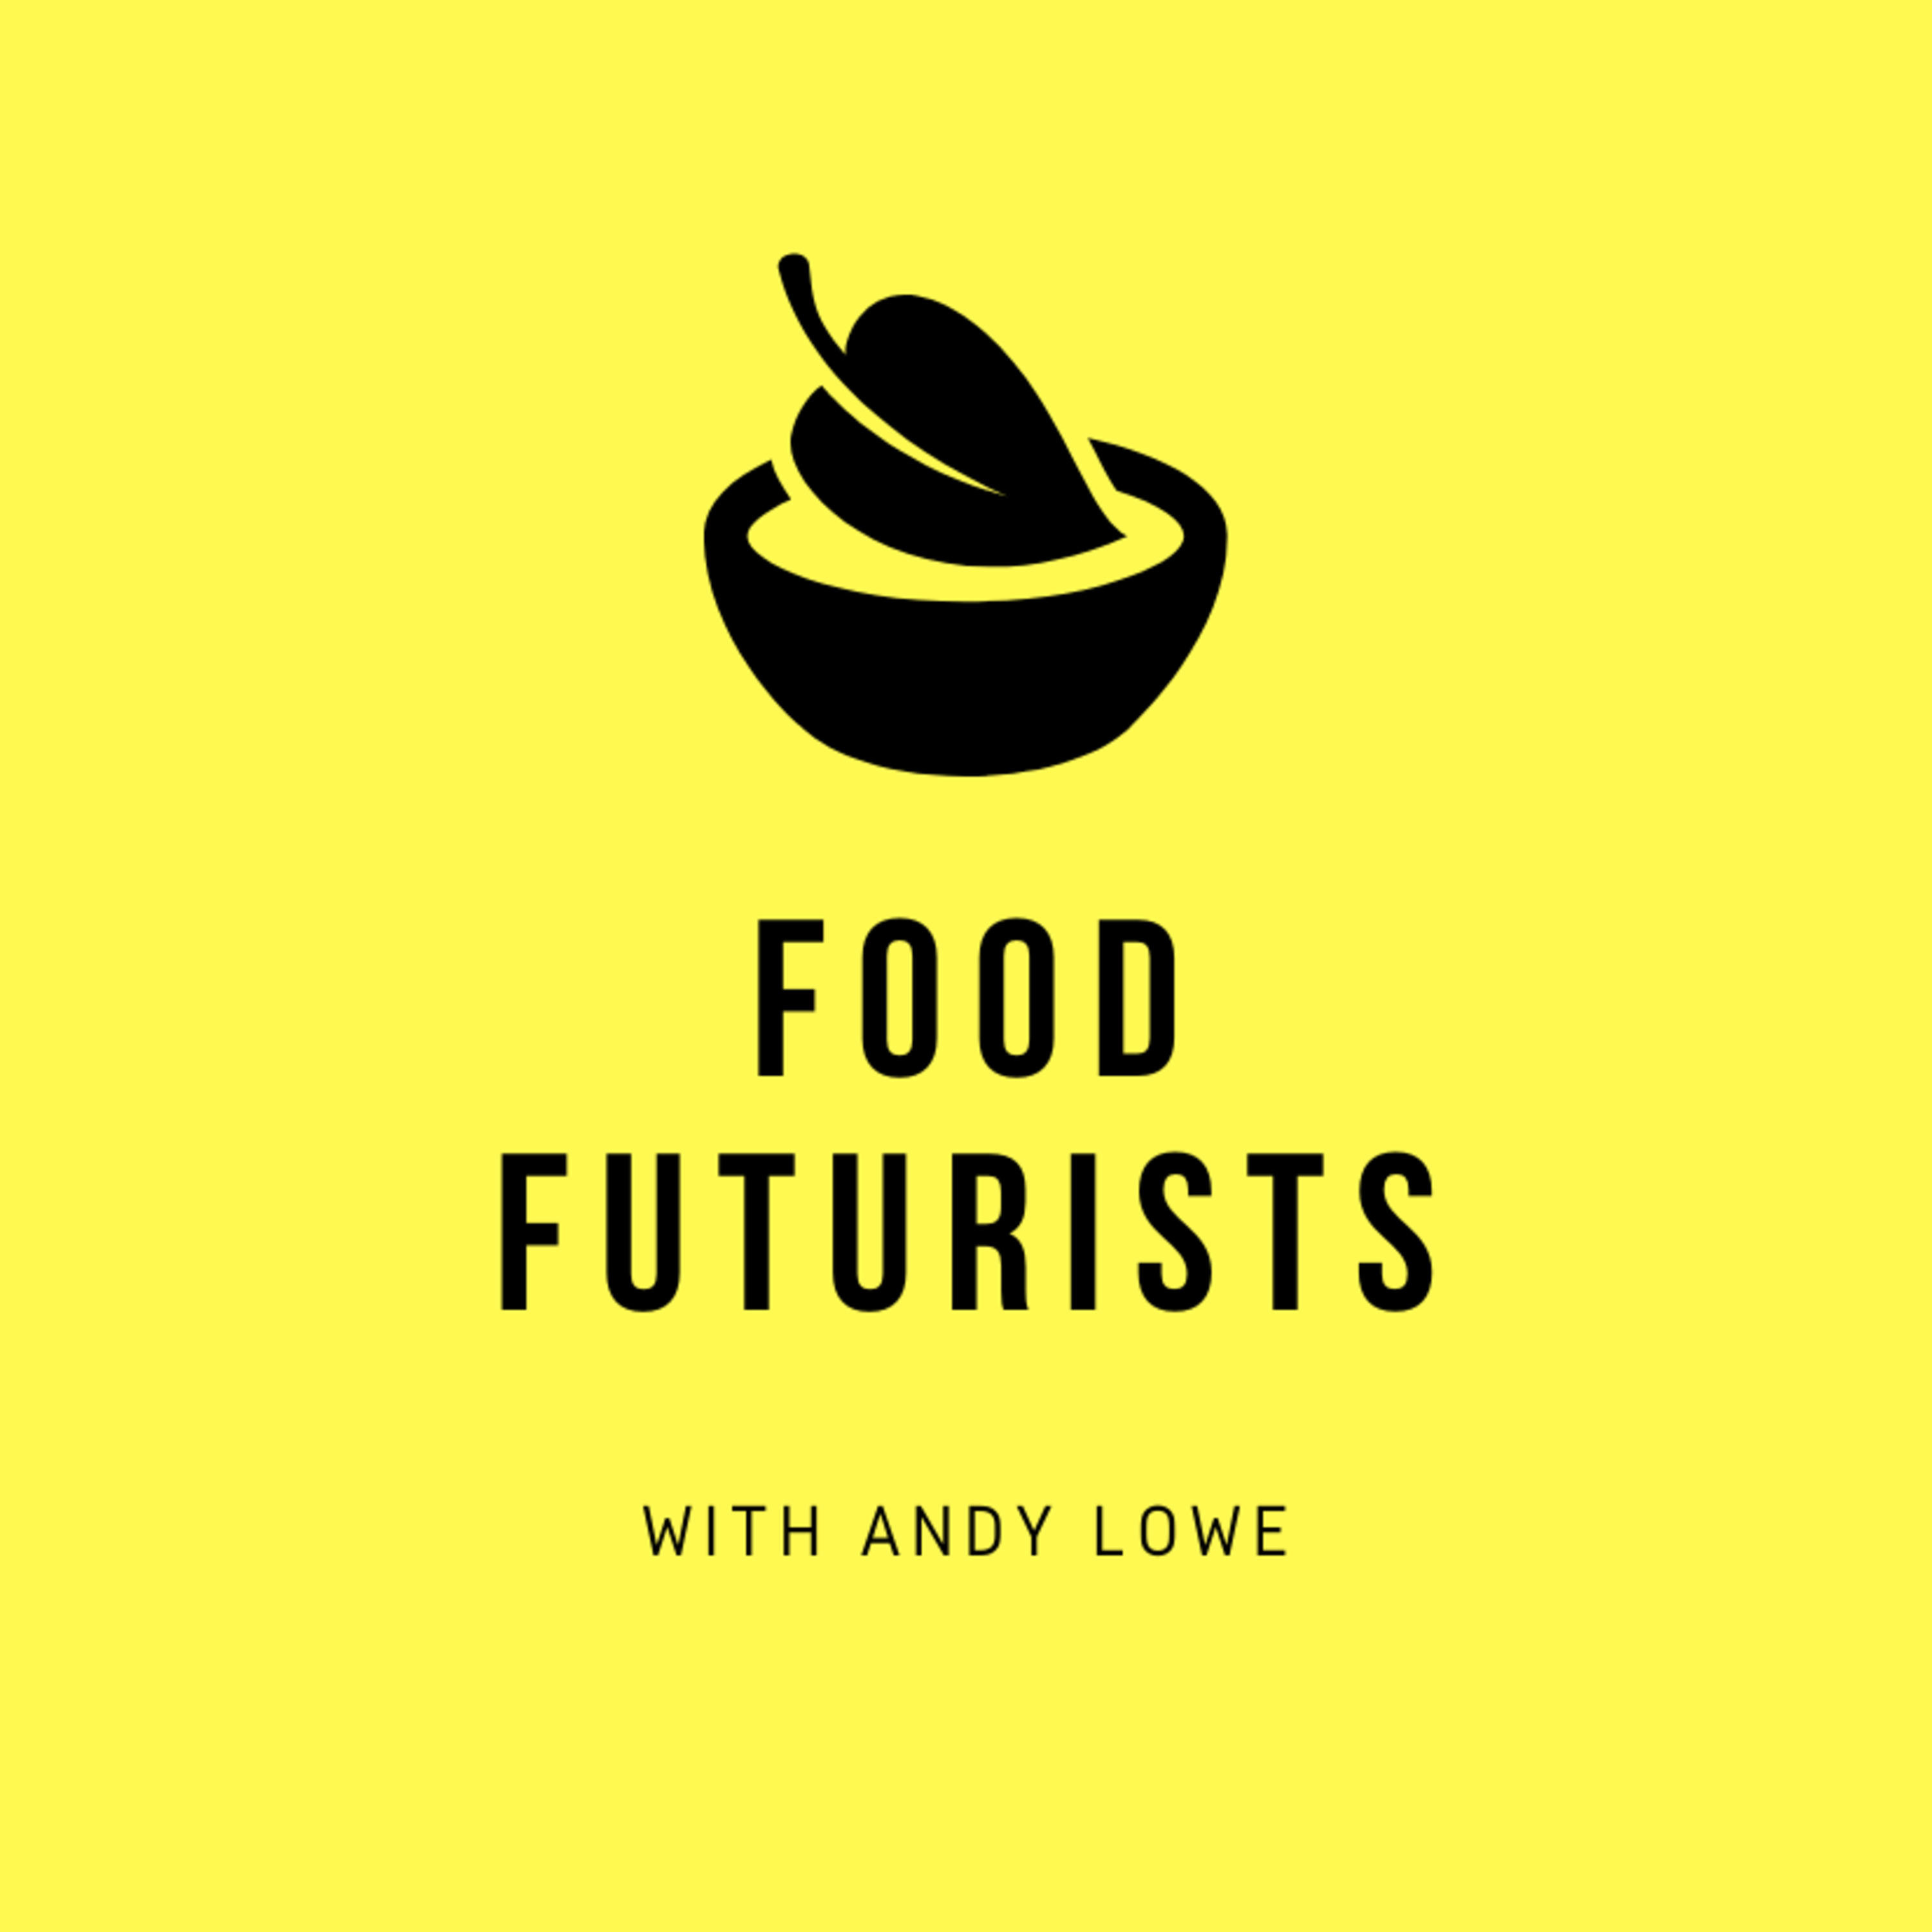 The minds & innovations behind a renowned global food summit - in conversation with Andy Lowe